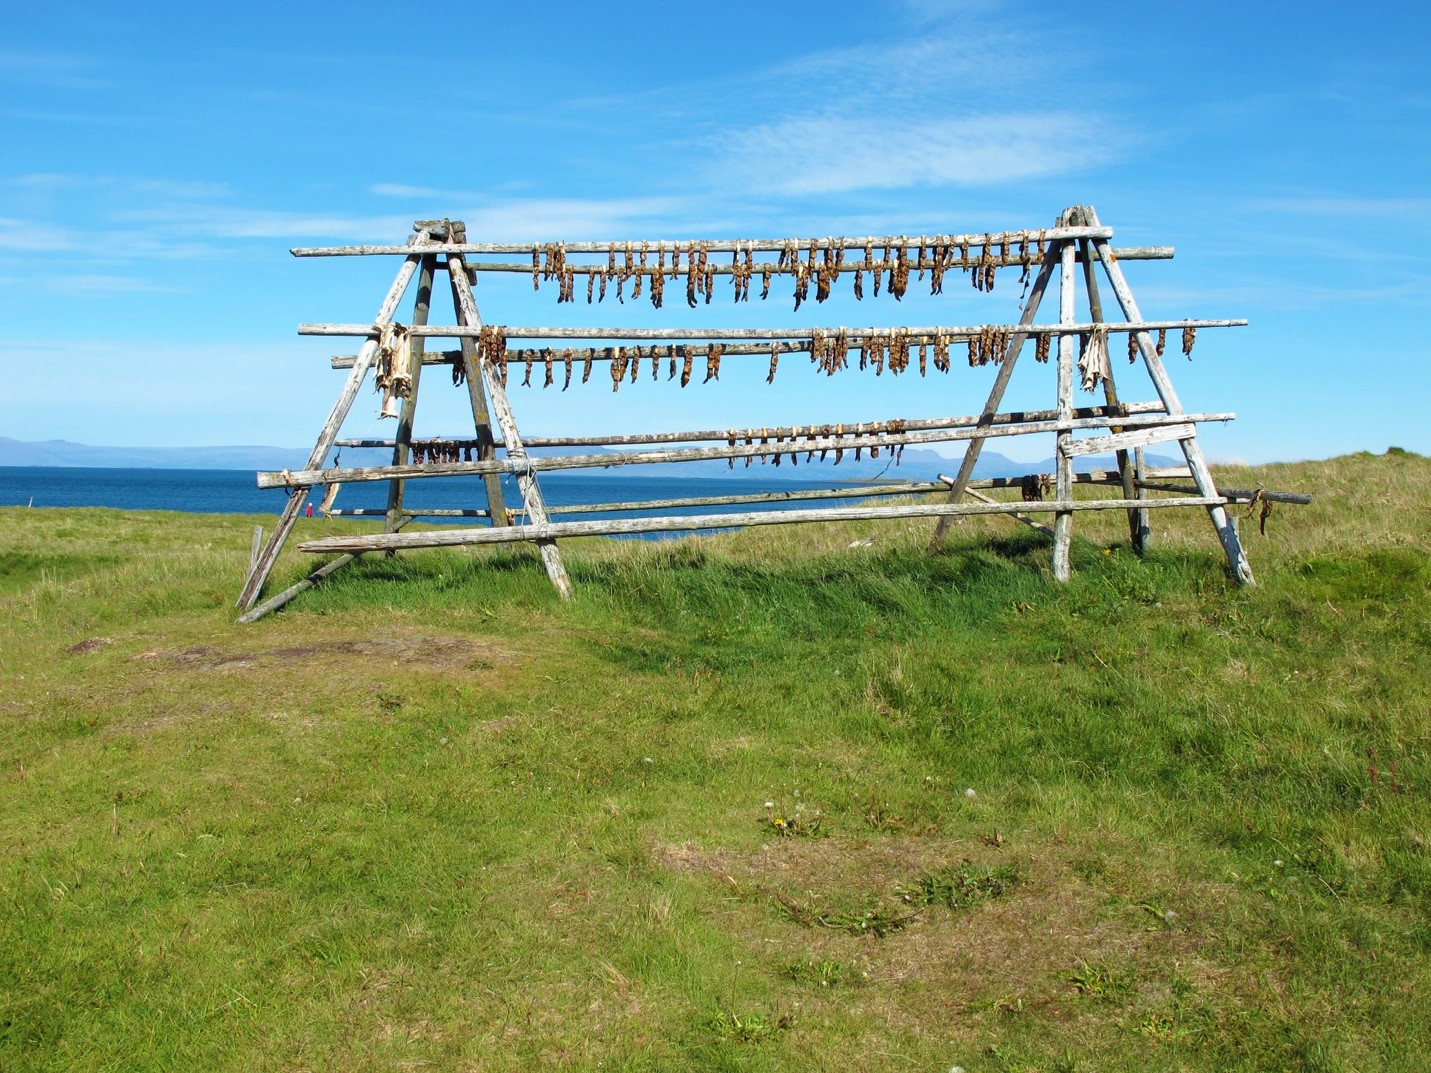 Iceland Dry Fish - Fishing in Iceland